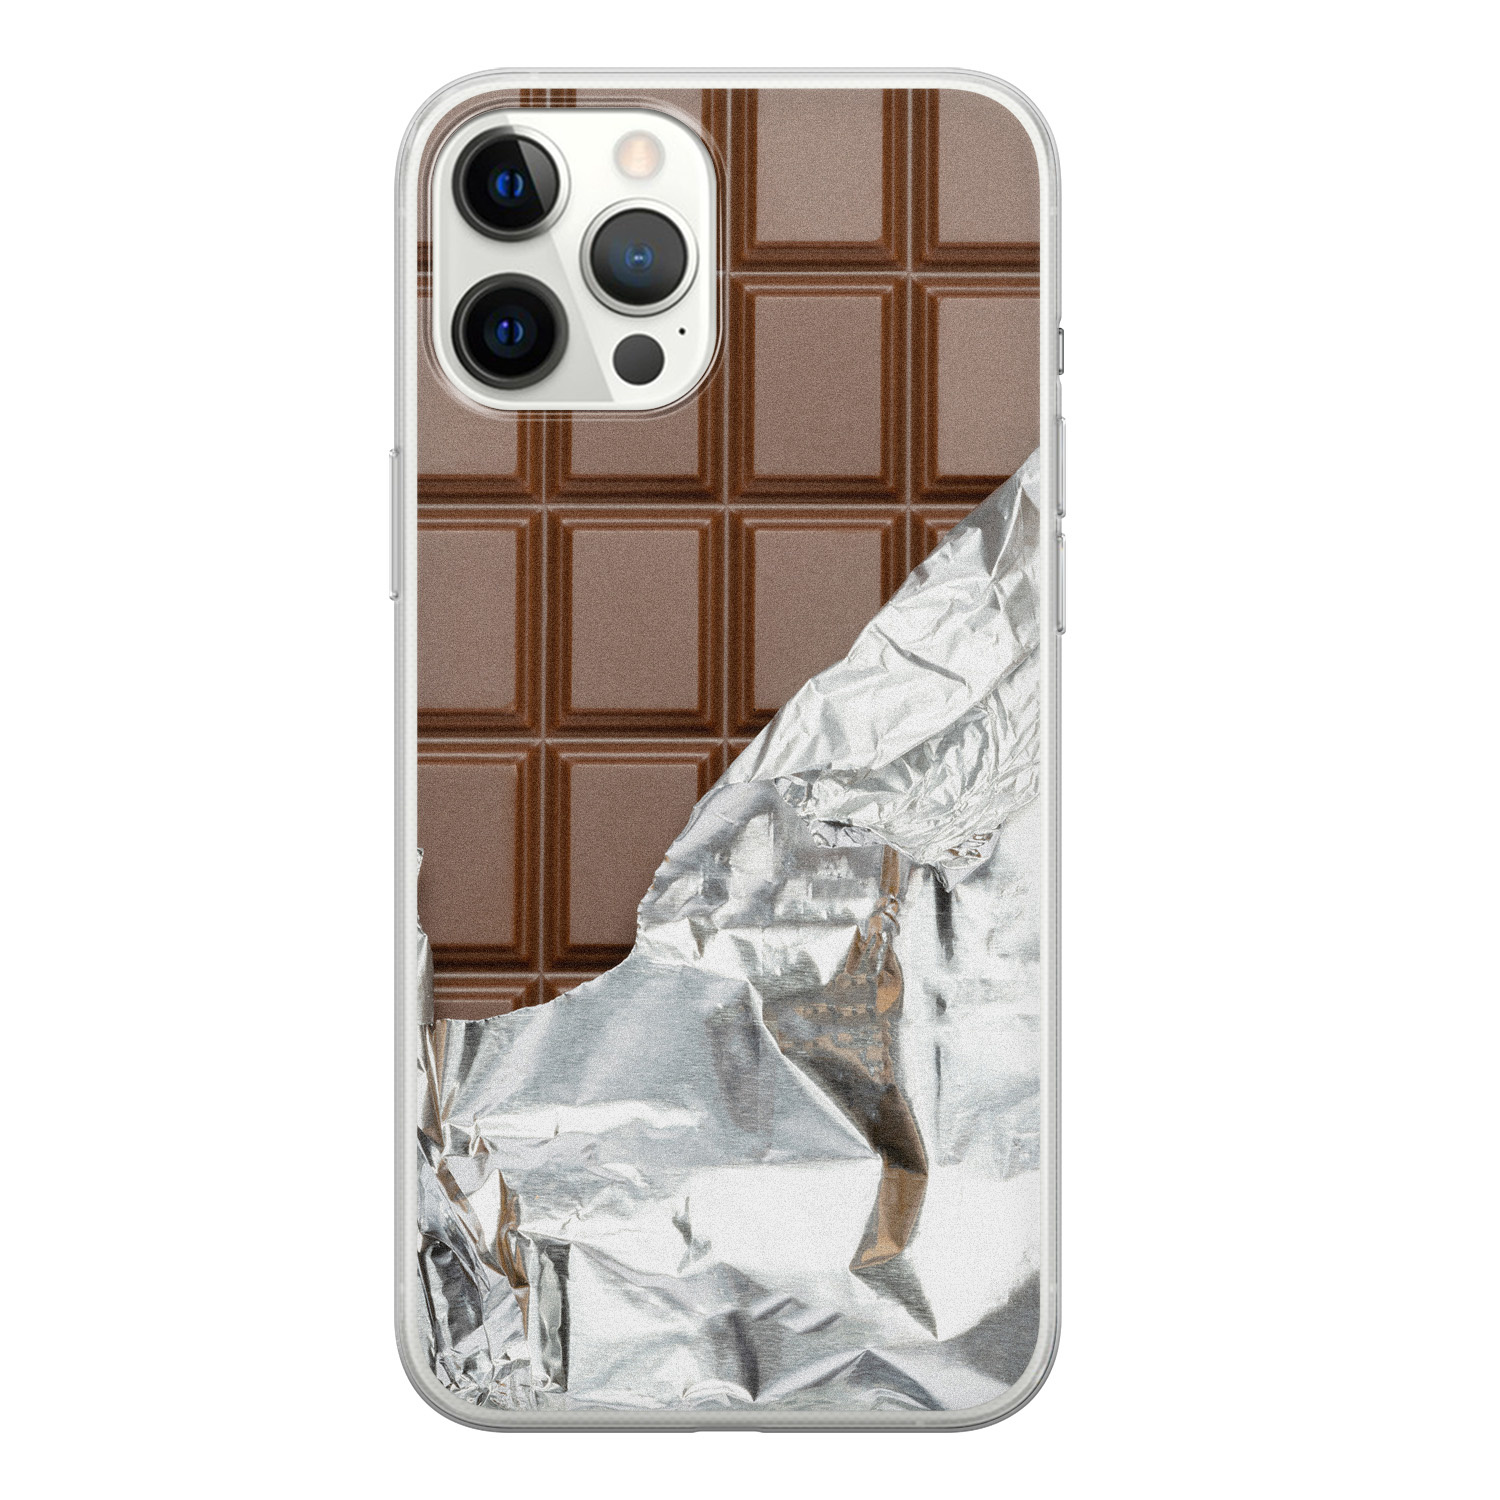 iPhone 12 Pro Max siliconen hoesje - Chocoladereep